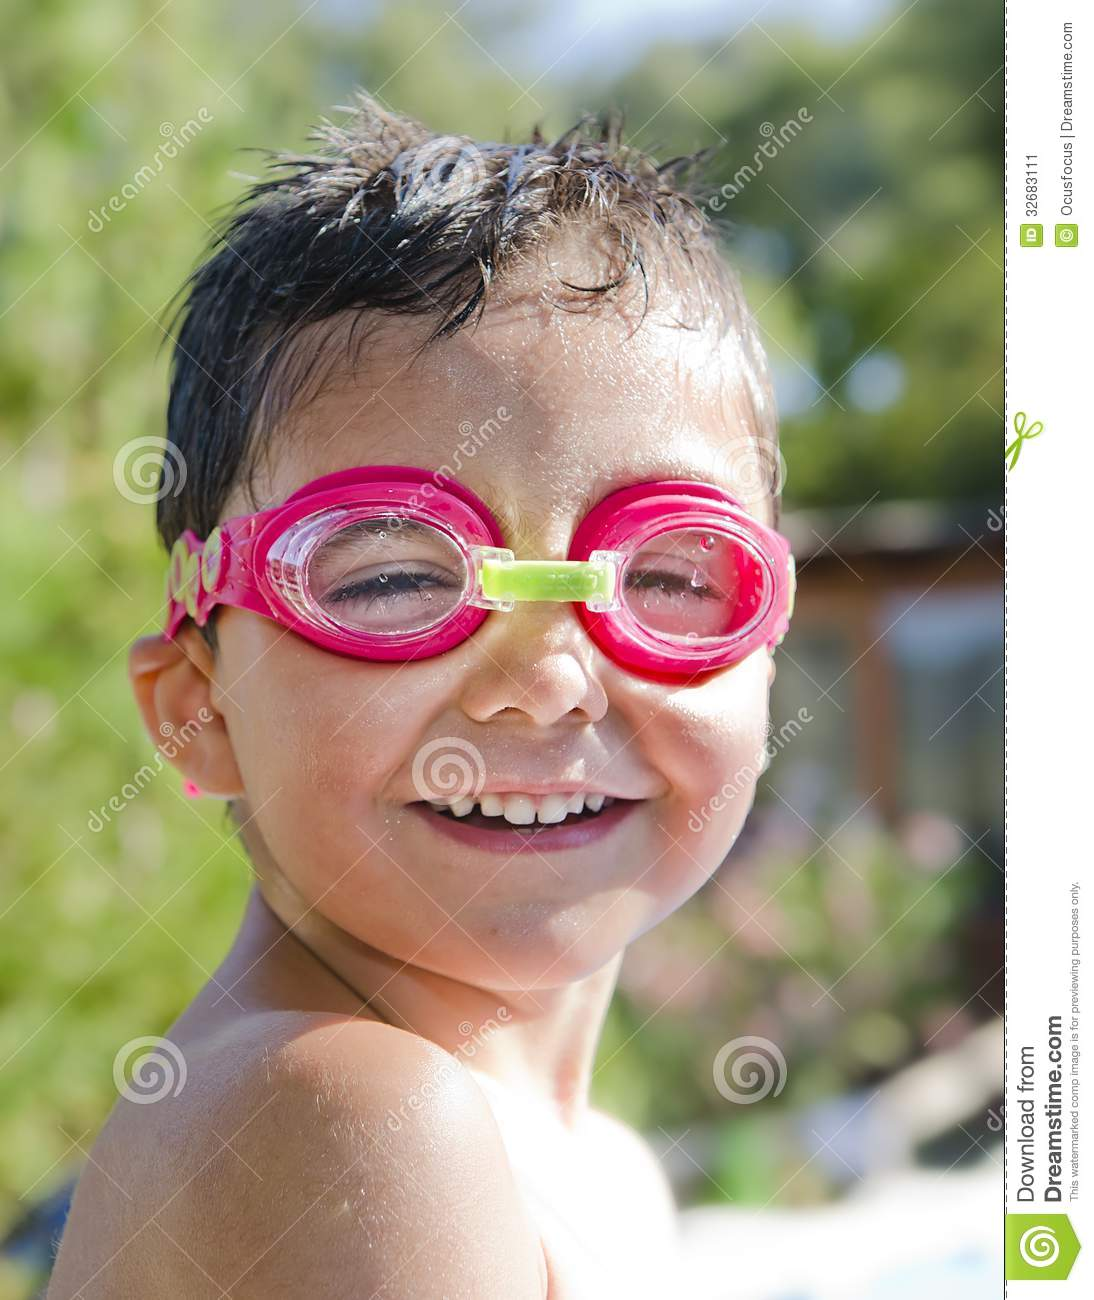 Cute Little Kid with Goggles laughing in Pool